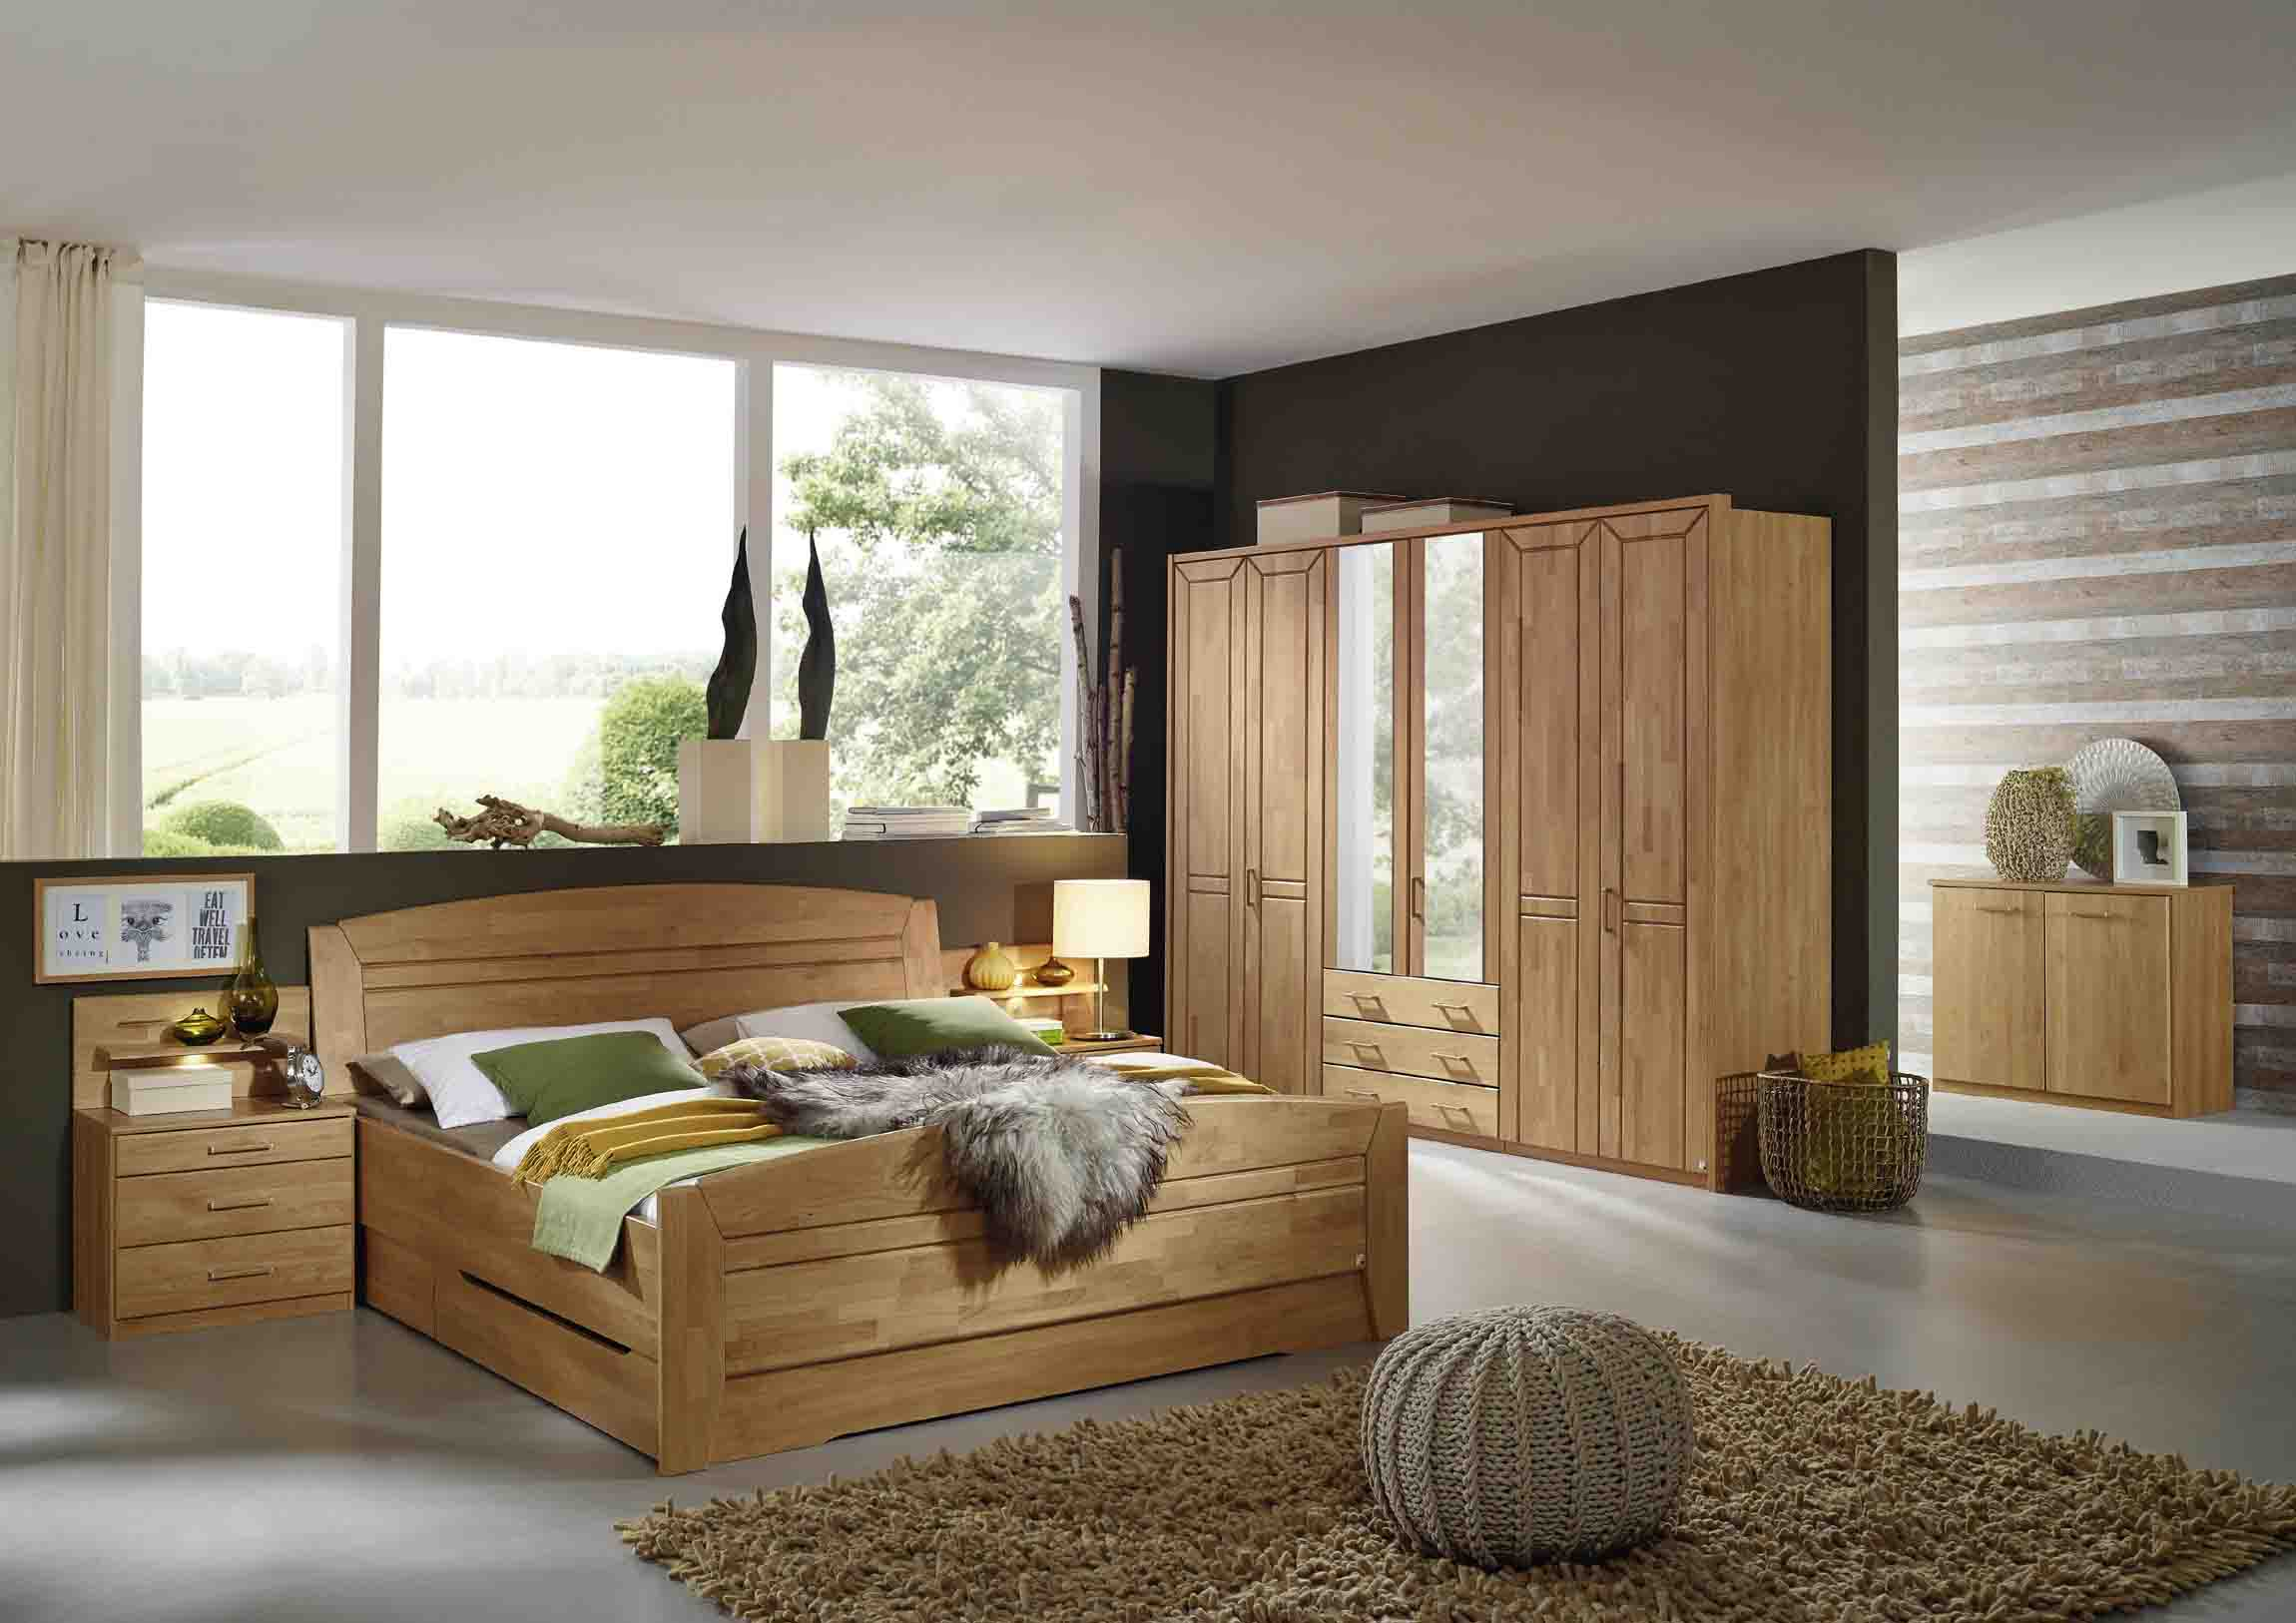 schlafzimmer silvana erle teilmassvi steffen online kaufen massiva m. Black Bedroom Furniture Sets. Home Design Ideas